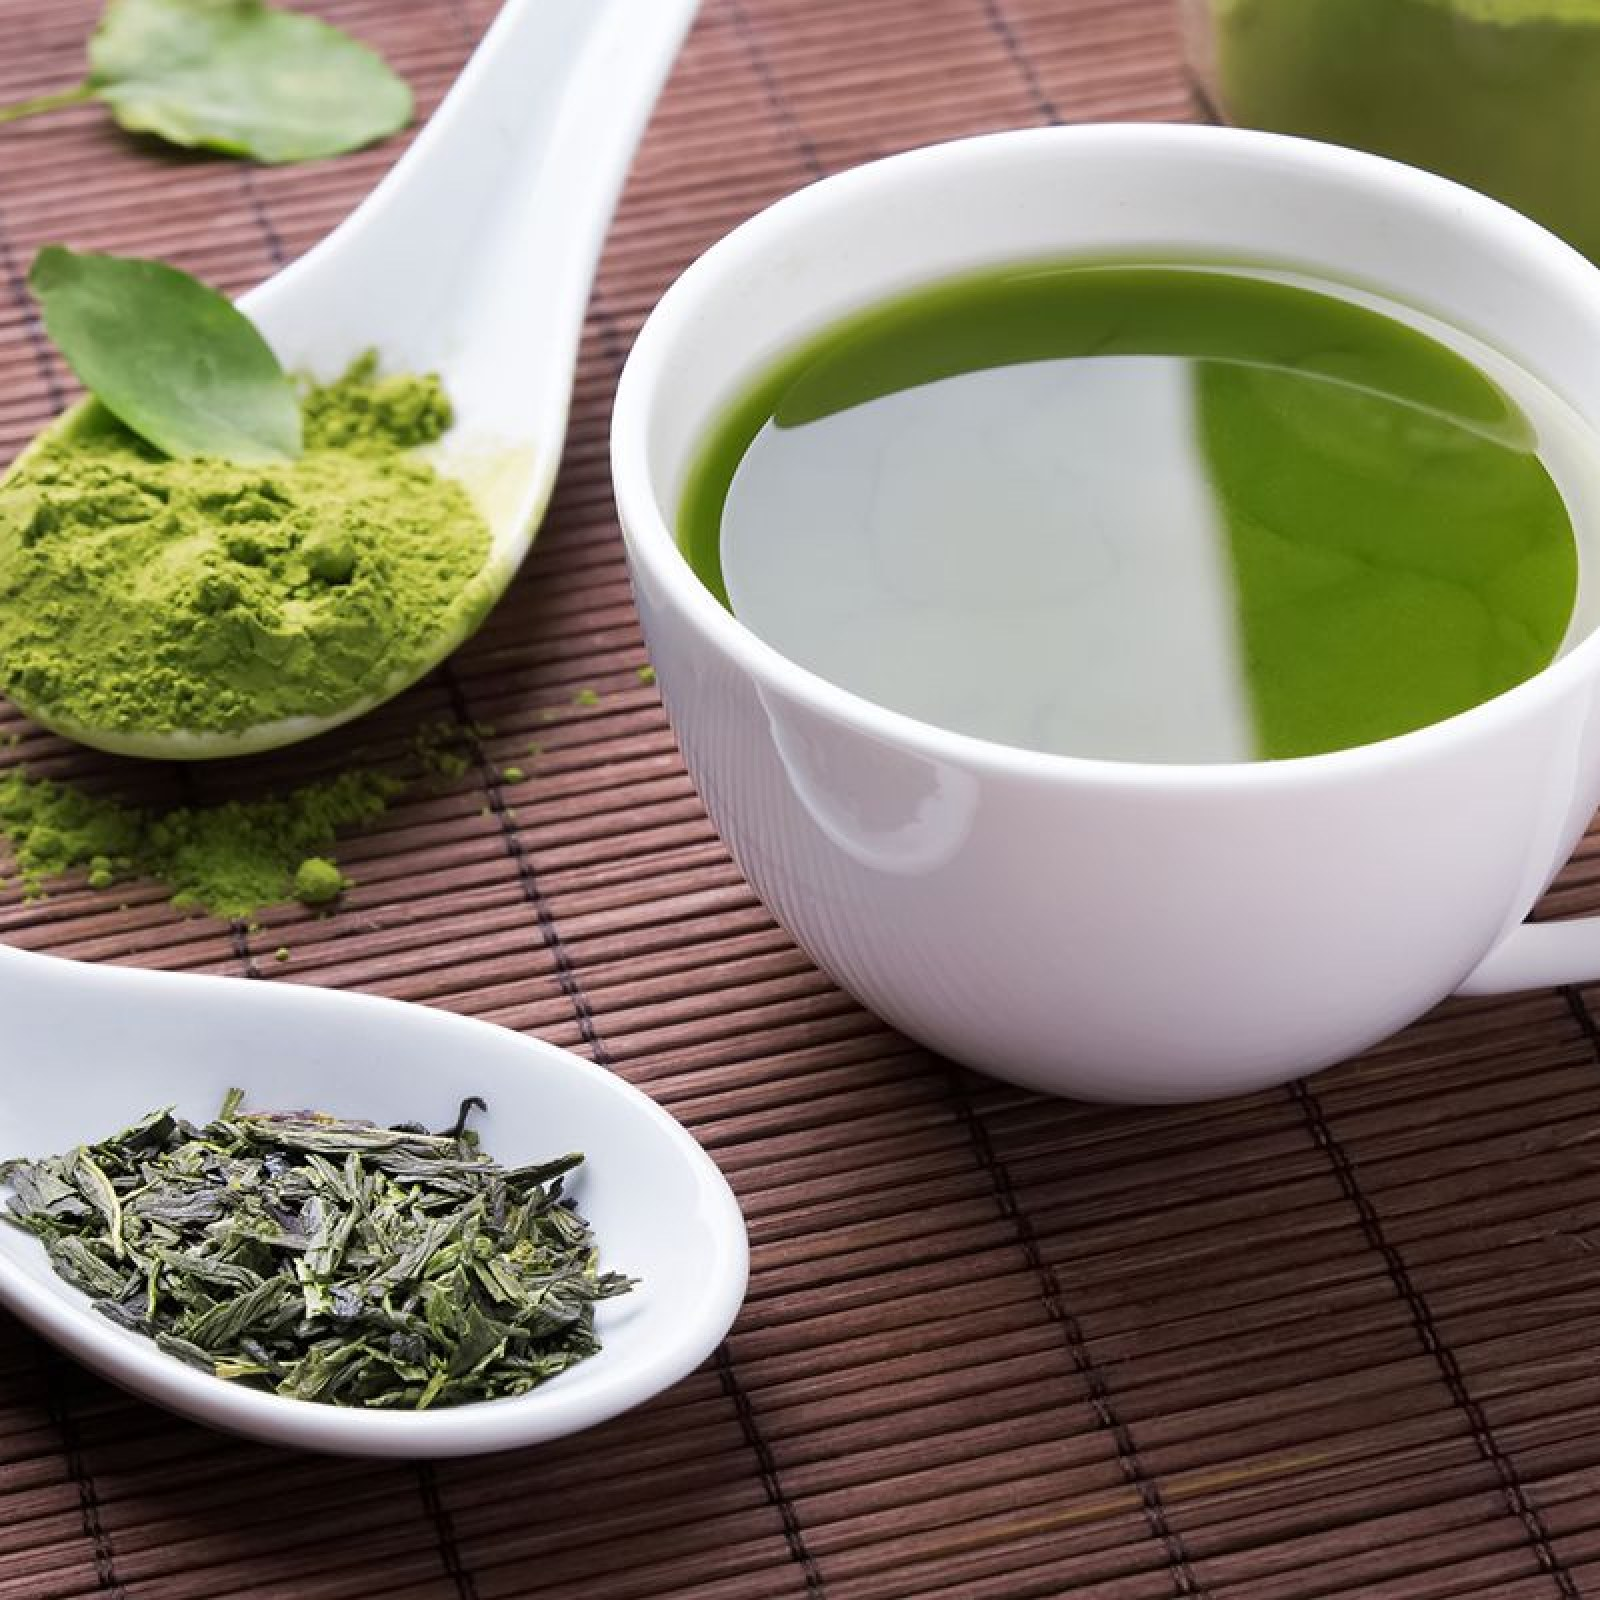 5 health benefits of green tea: from losing weight to